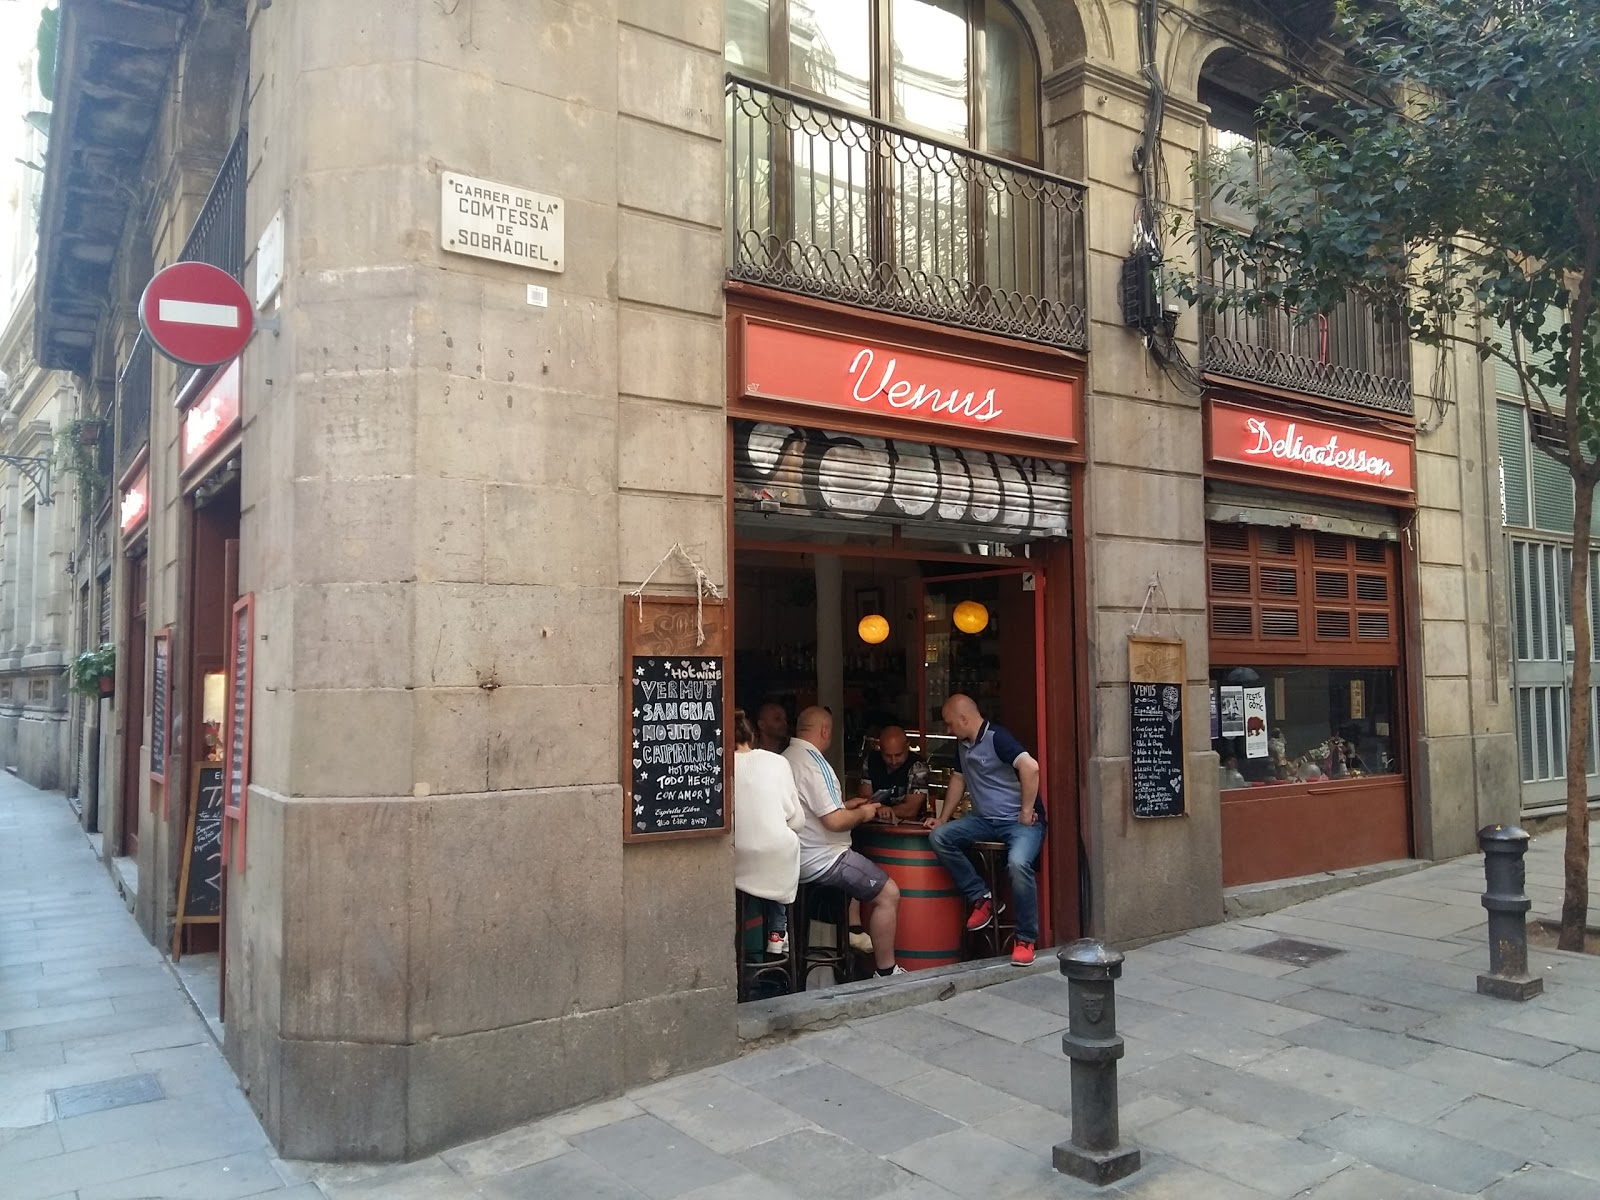 Venus Delicatessen Barcelona: A Work-Friendly Place in Barcelona